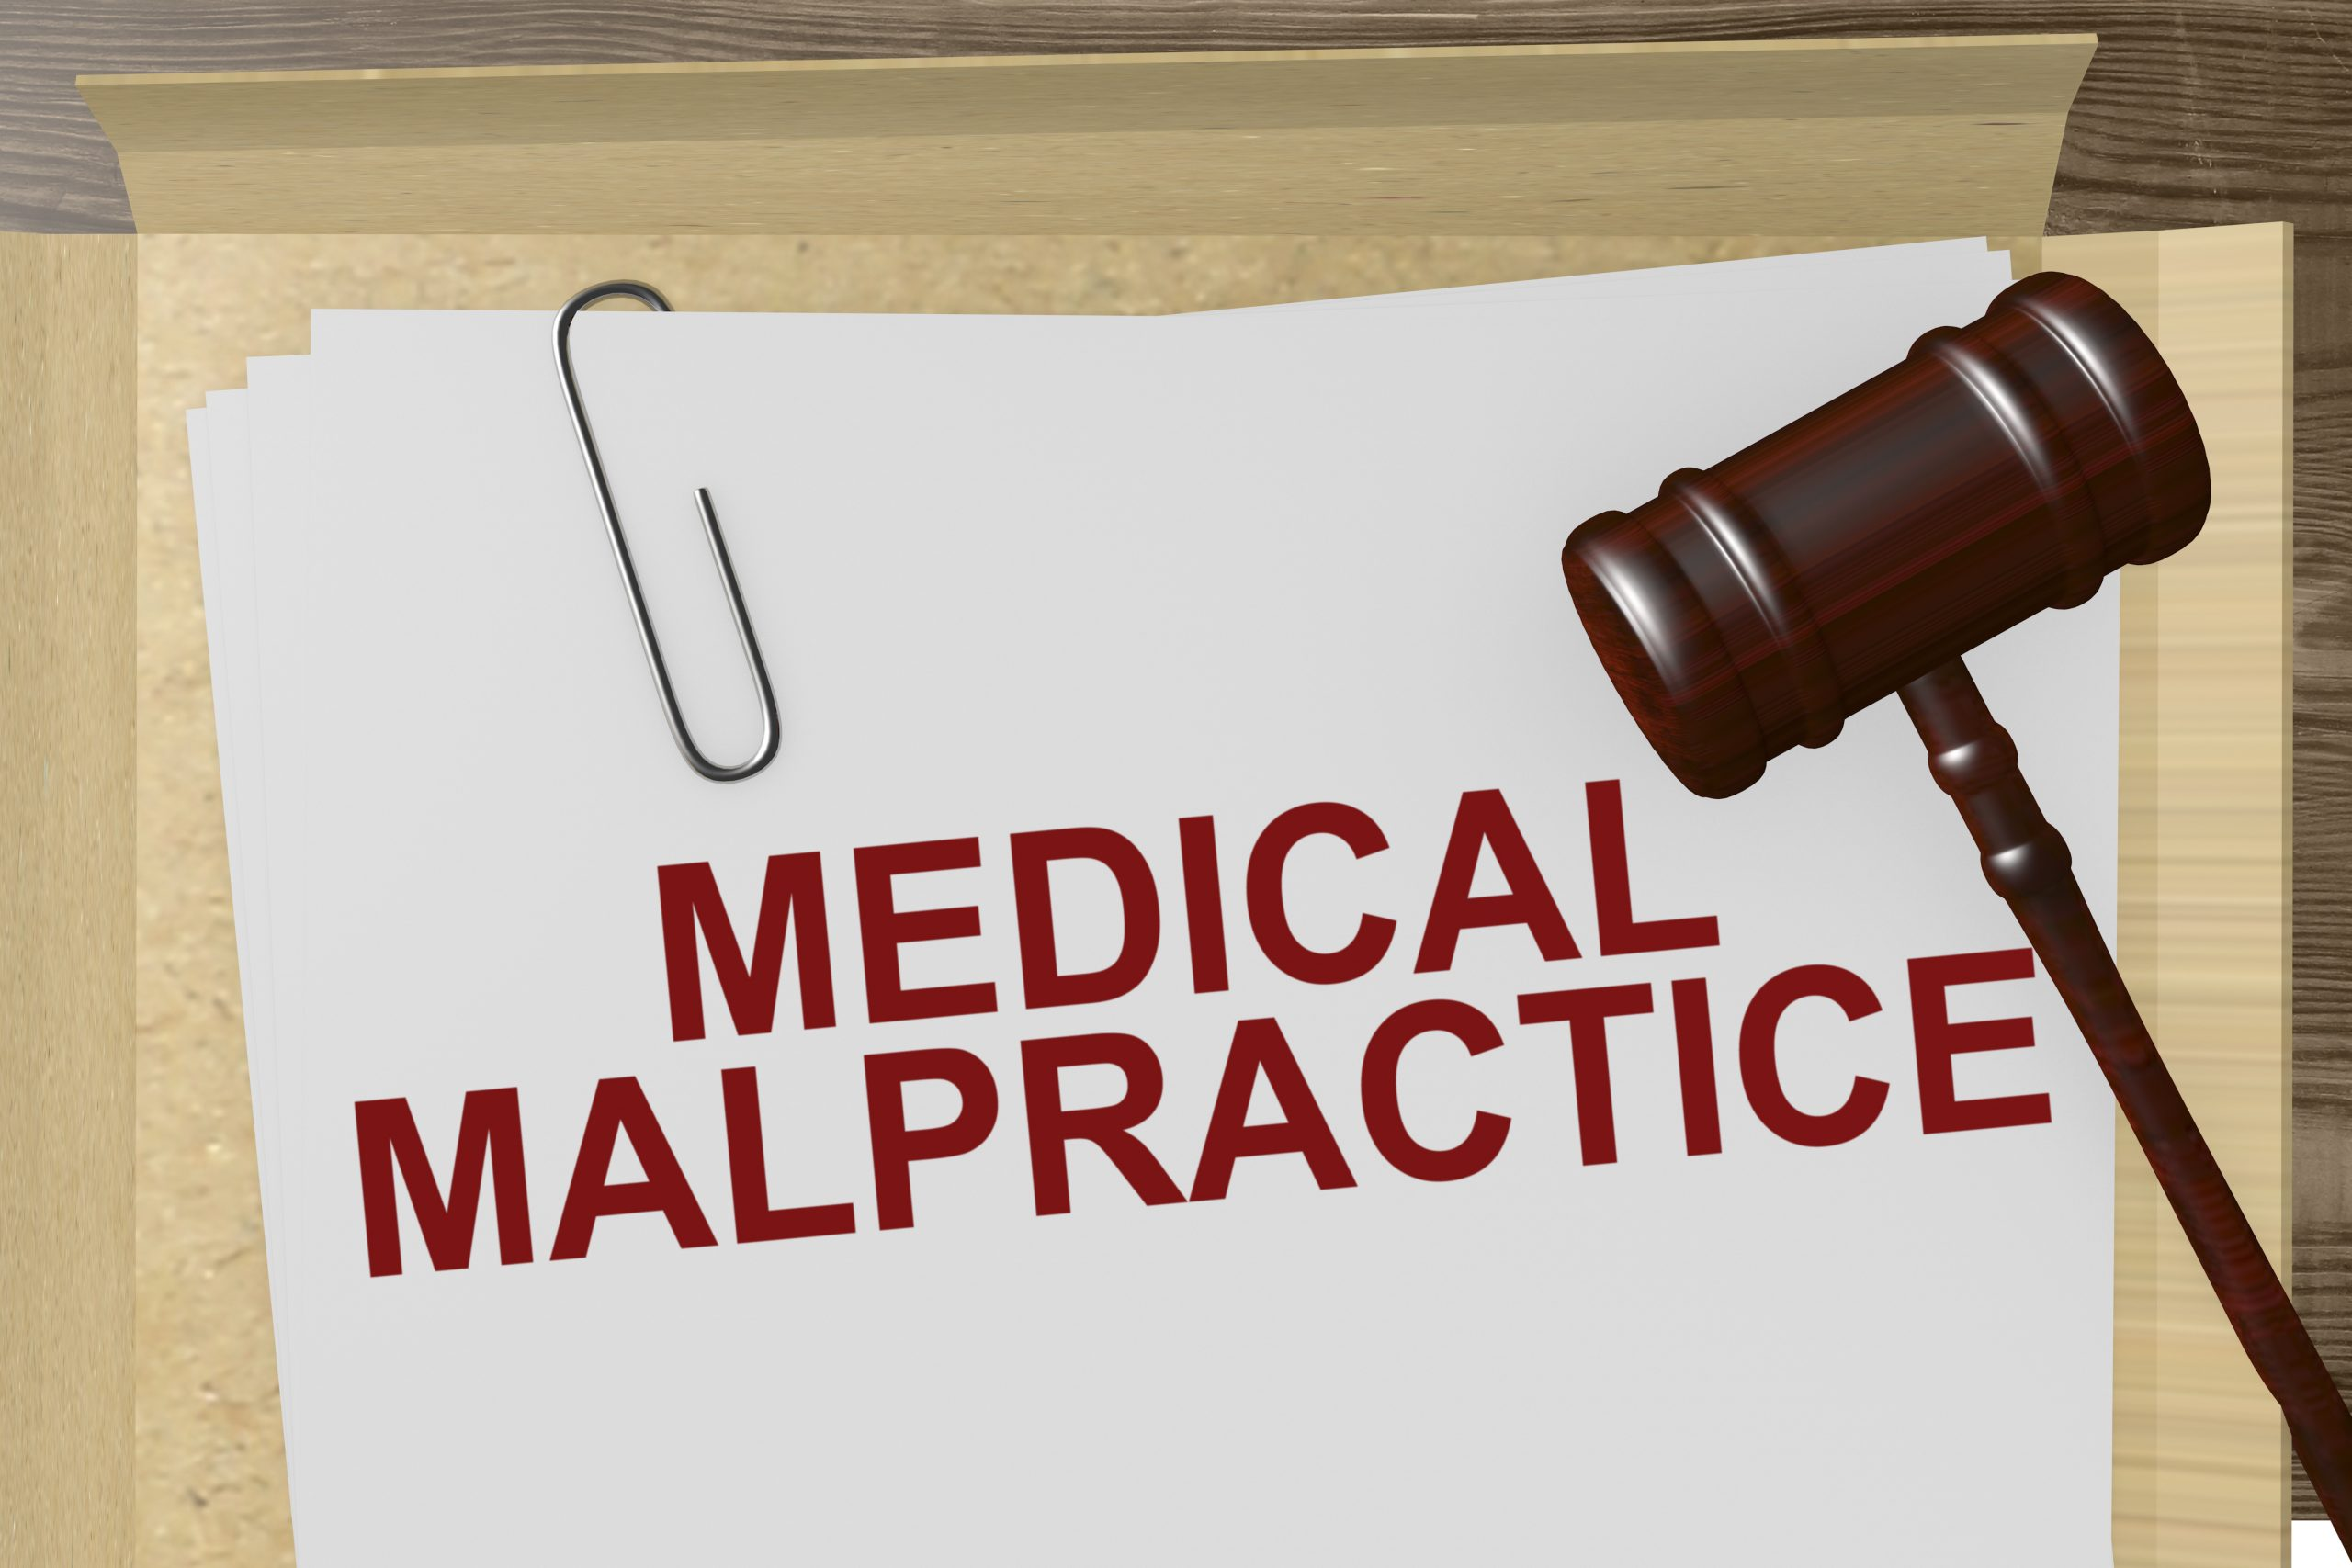 picture of medical malpractice papers in a file